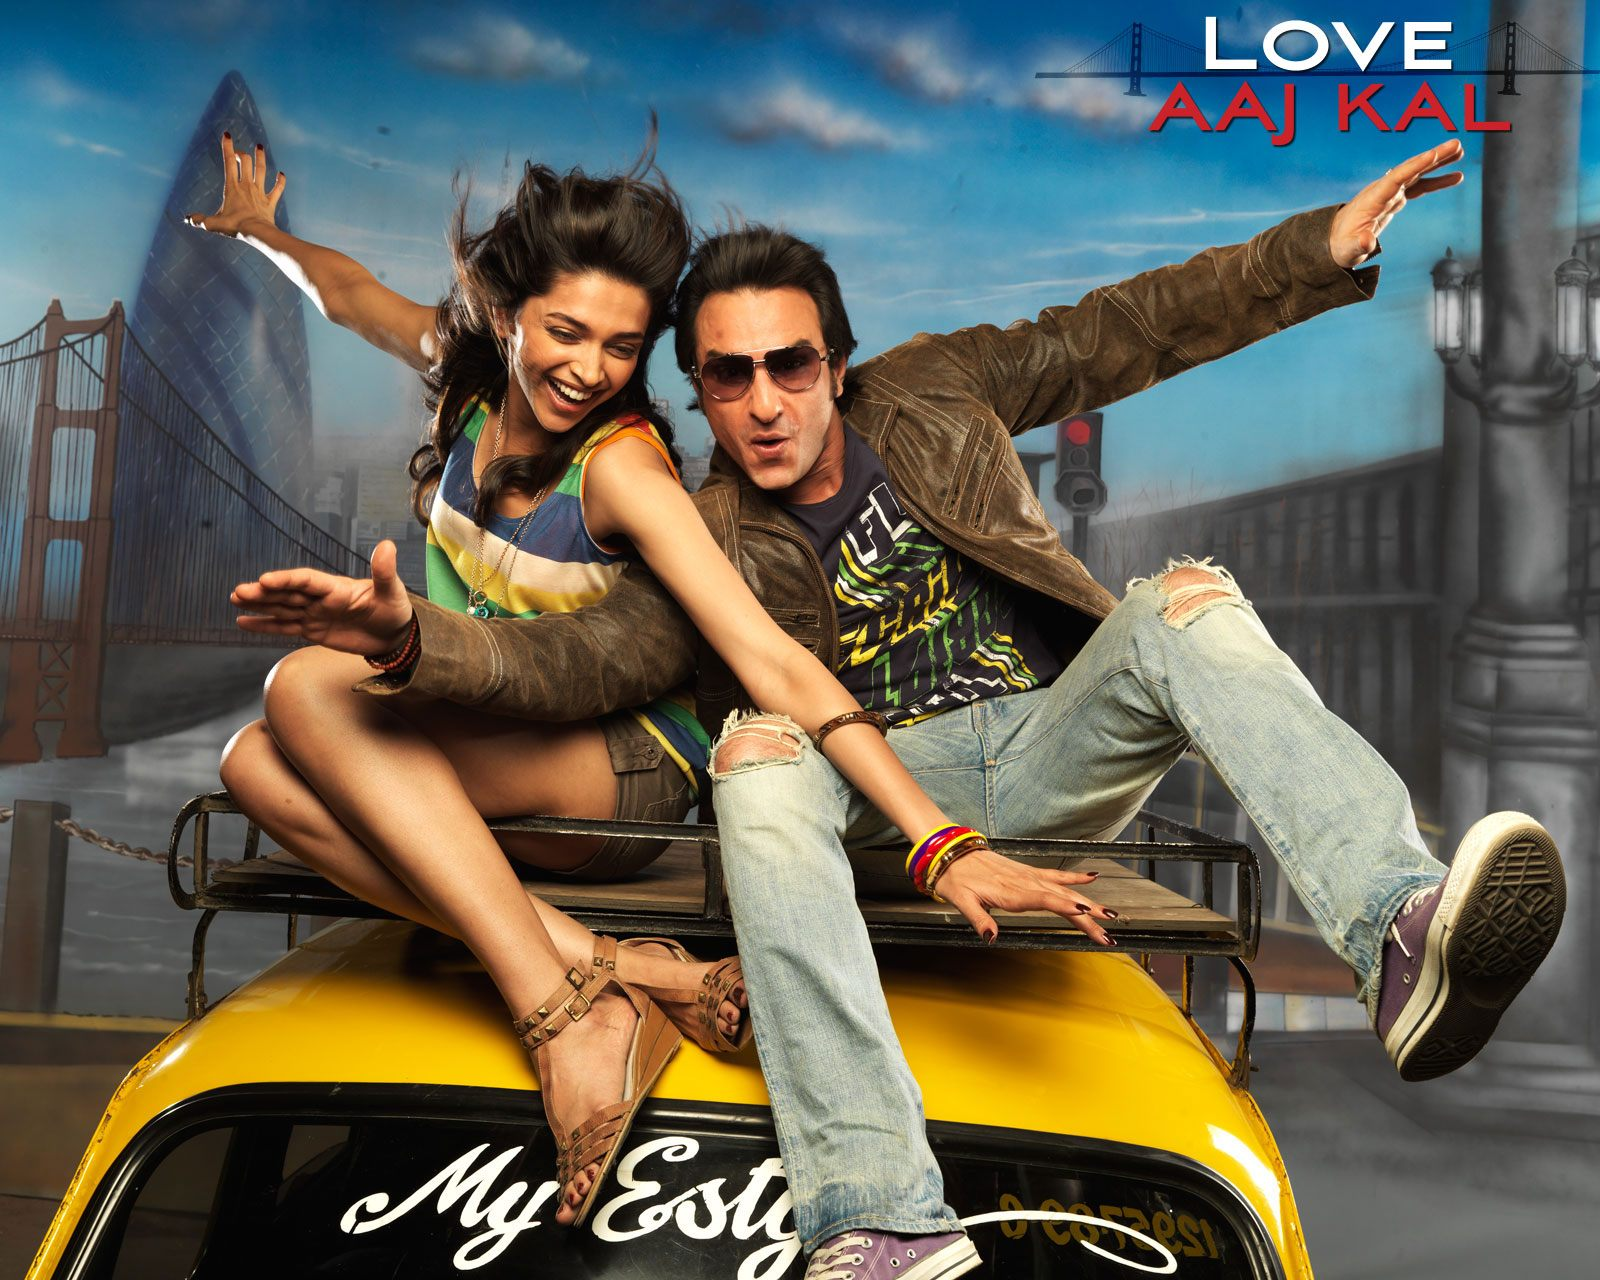 Love Aaj Kal Film Song Pk Download